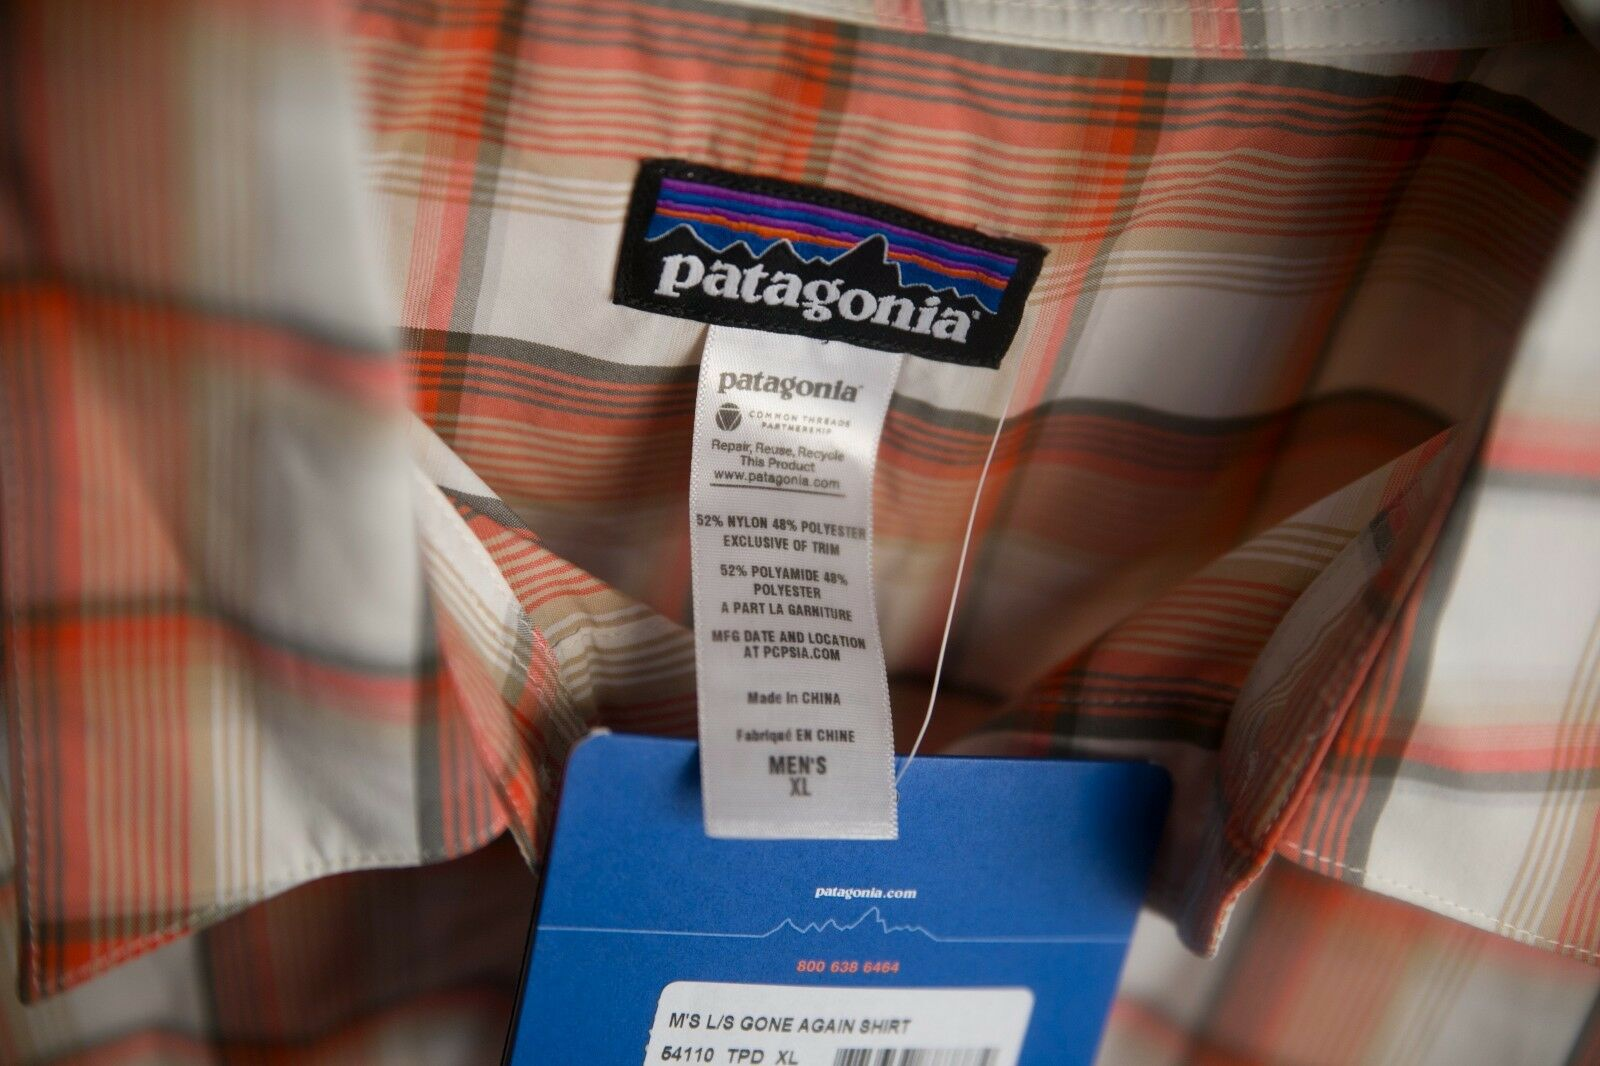 Patagonia Hemd mit Tasche Gone Again Shirt L L L S XL kariert Regular Fit Outlet 69a33e